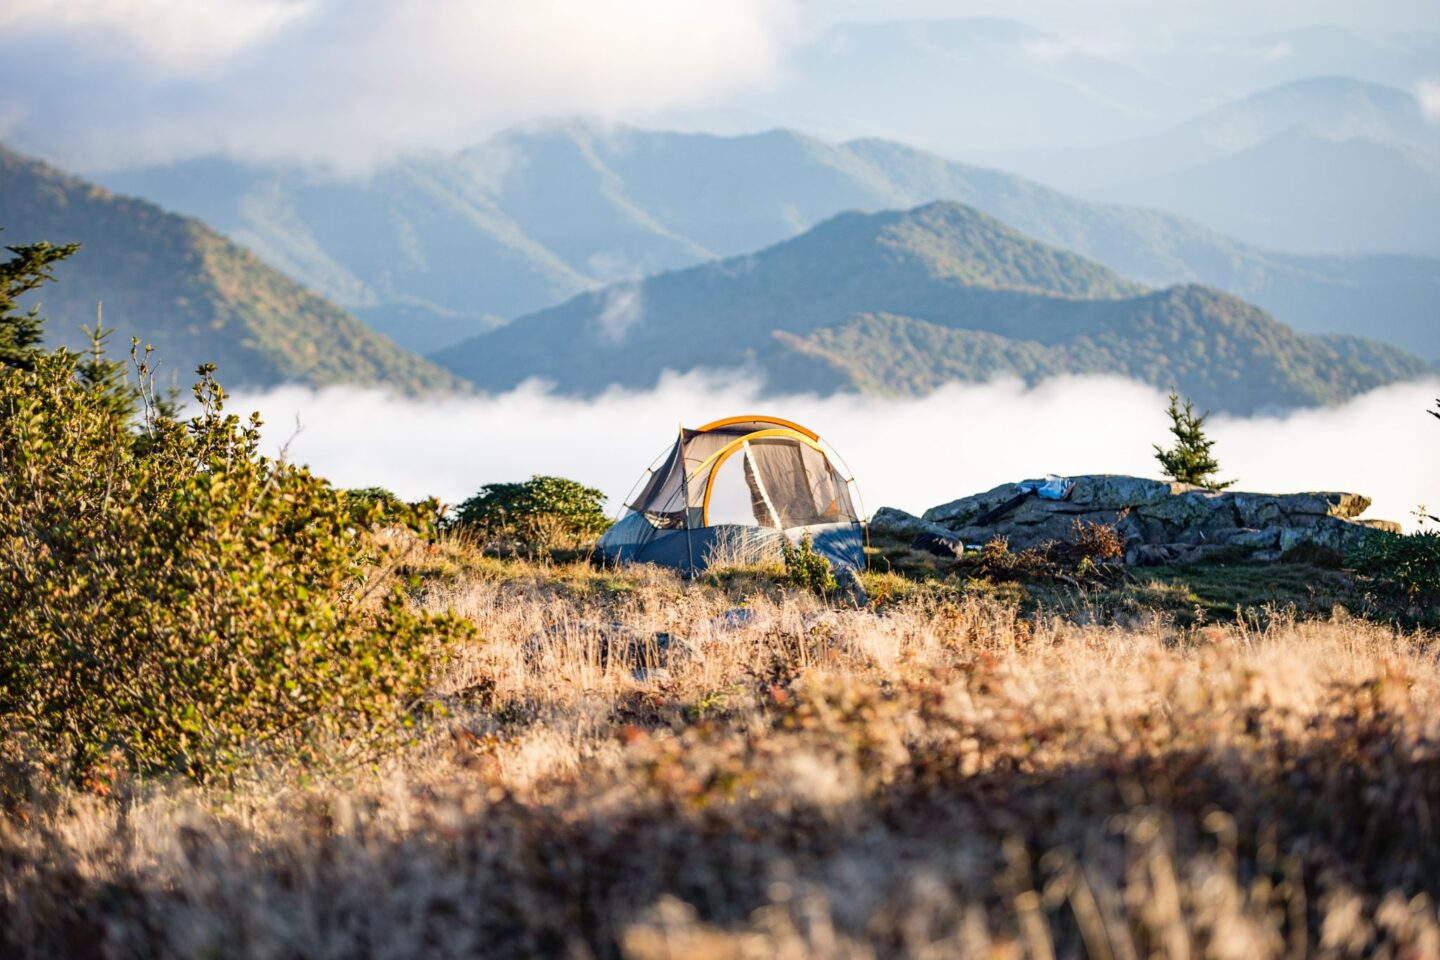 Going Camping? 5 Places to Put on Your Bucket List